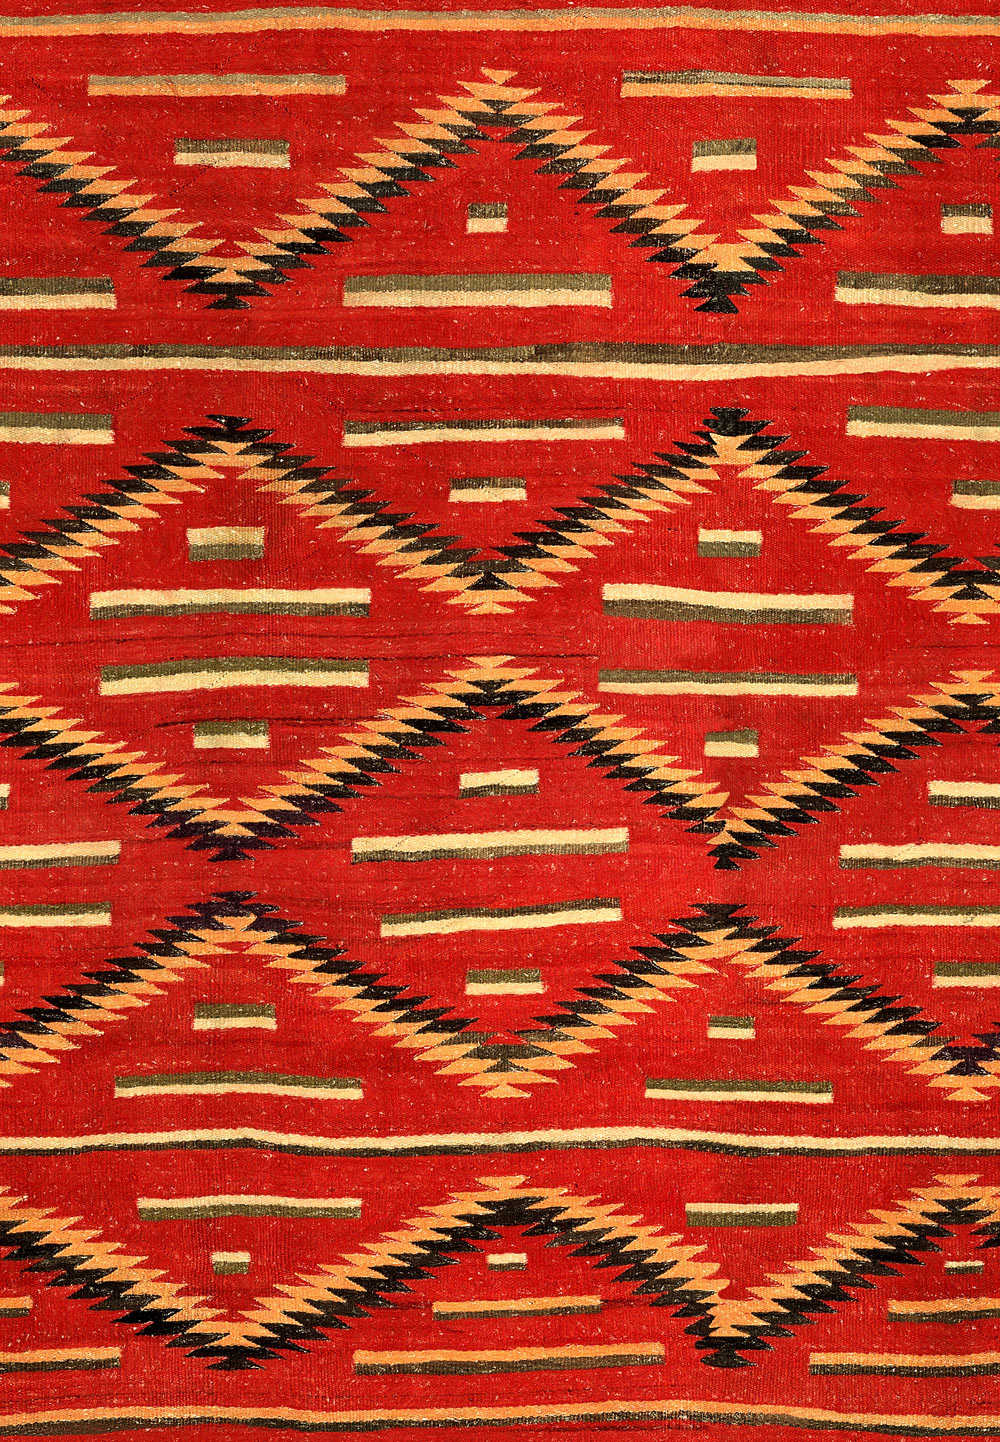 Eyedazzler Navajo Fabric - Red / Yellow / Black - by Mind the Gap